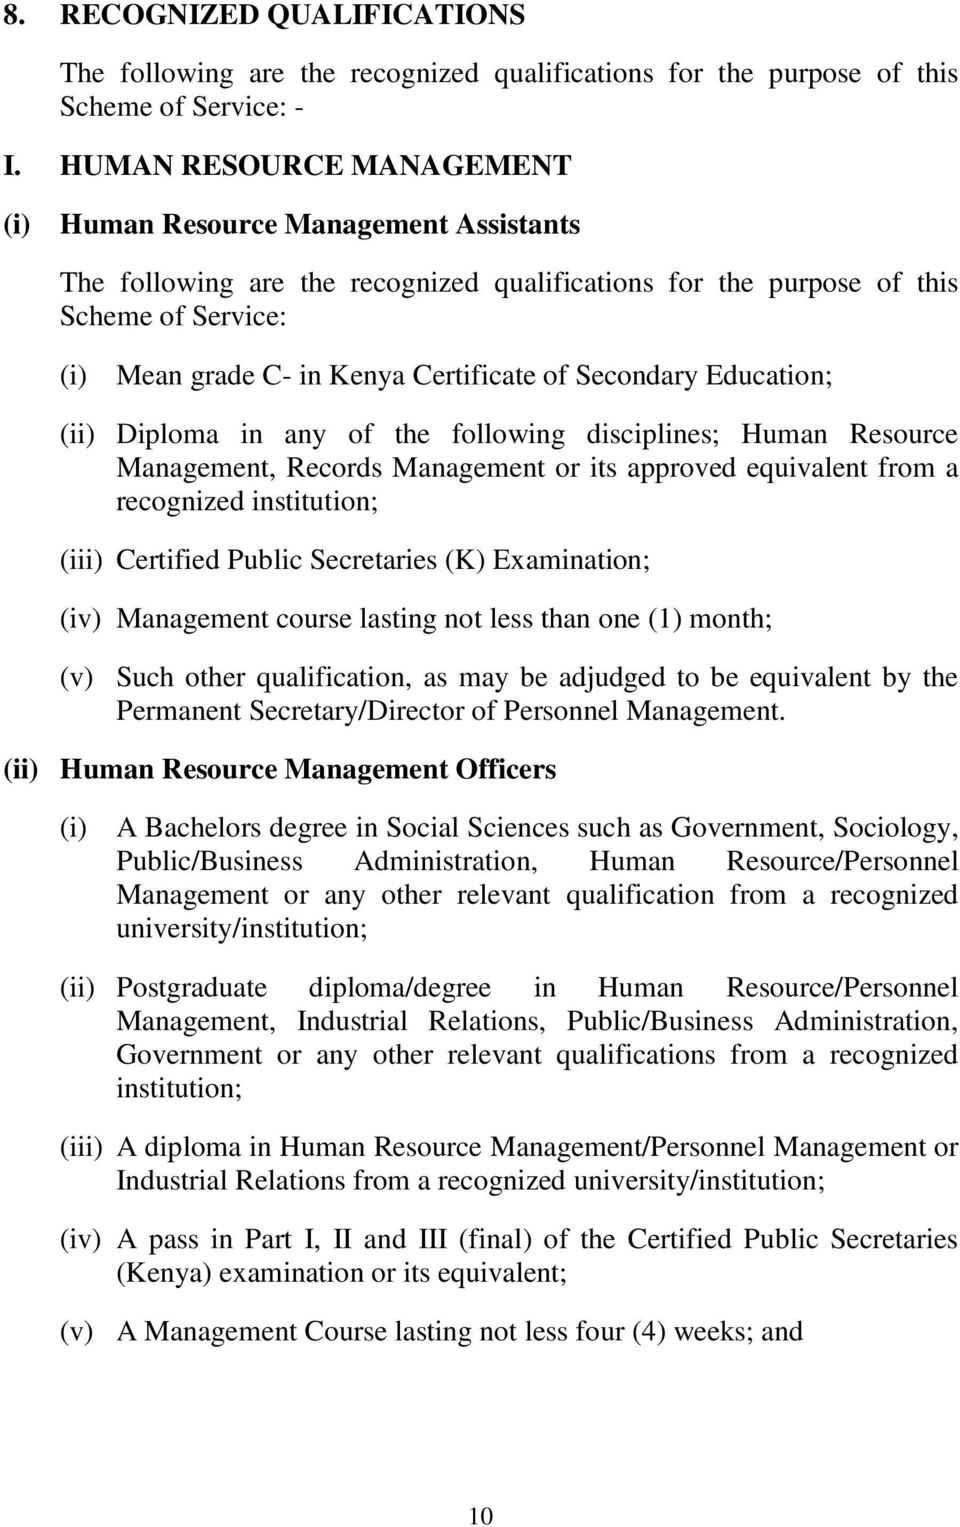 Secondary Education; (ii) Diploma in any of the following disciplines; Human Resource Management, Records Management or its approved equivalent from a recognized institution; (iii) Certified Public